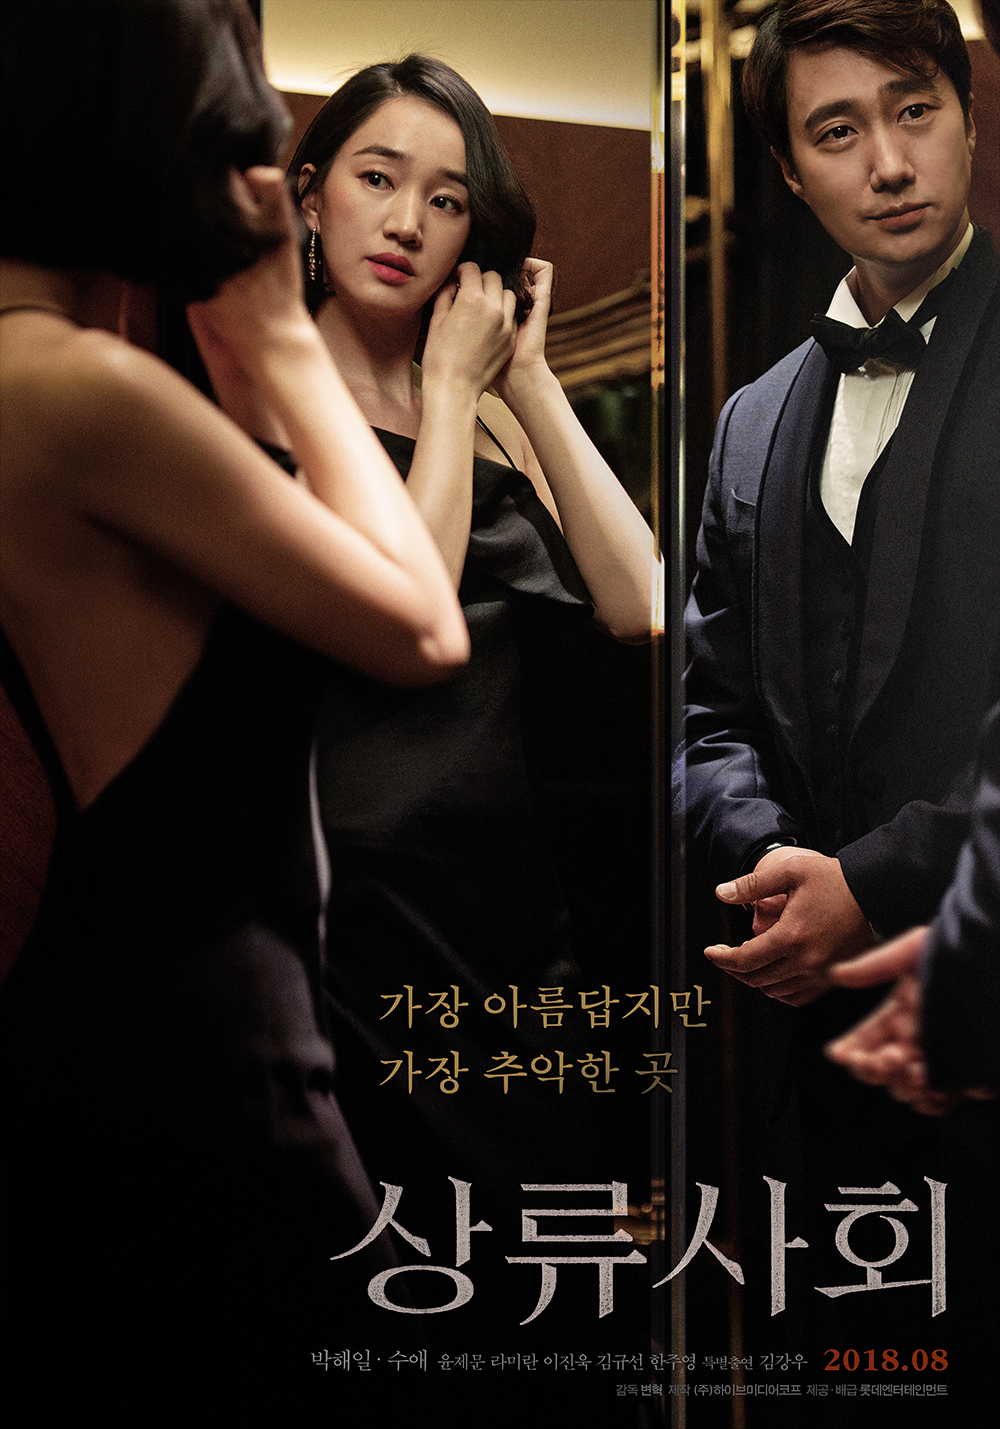 Image result for High Society movie poster 2018